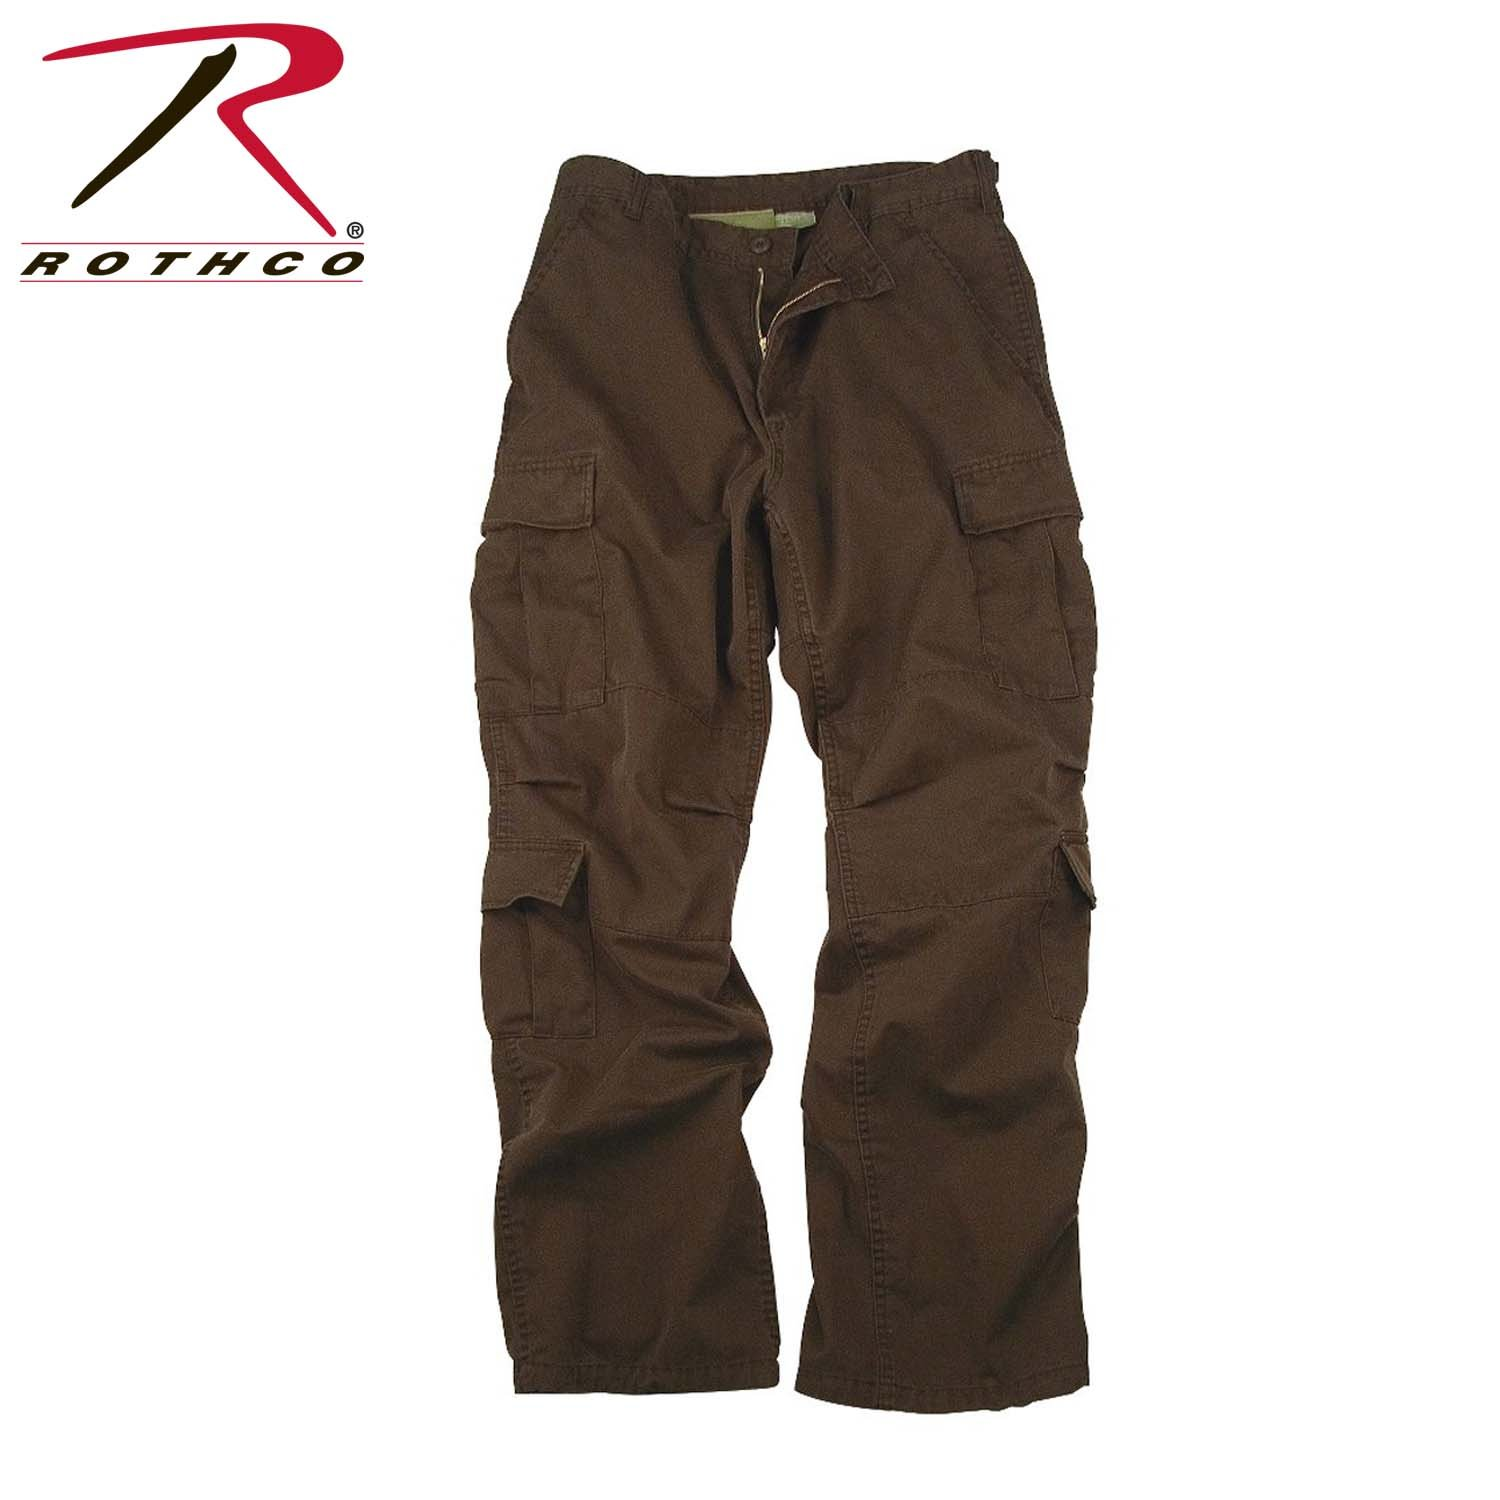 Rothco Vintage Paratrooper Fatigues, Brown, 3X